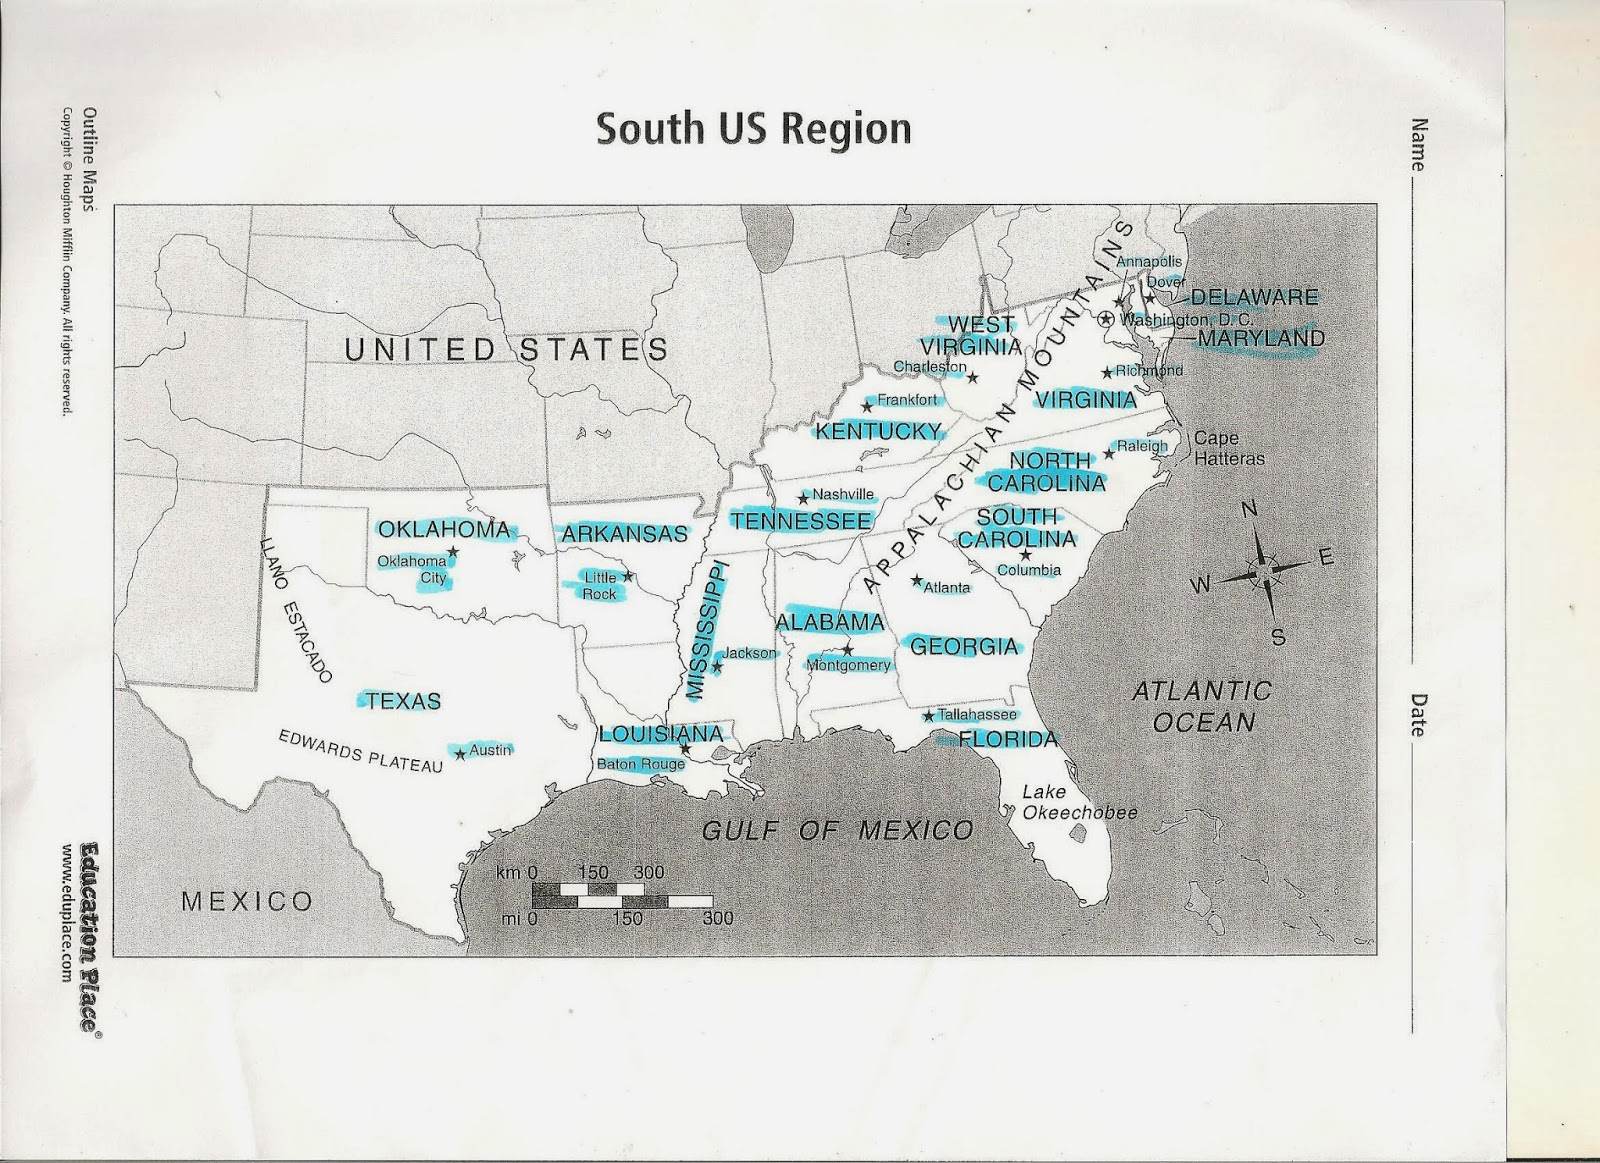 Mom Taxi Julie Working On Being As Smart As A Th Grader - South region us map